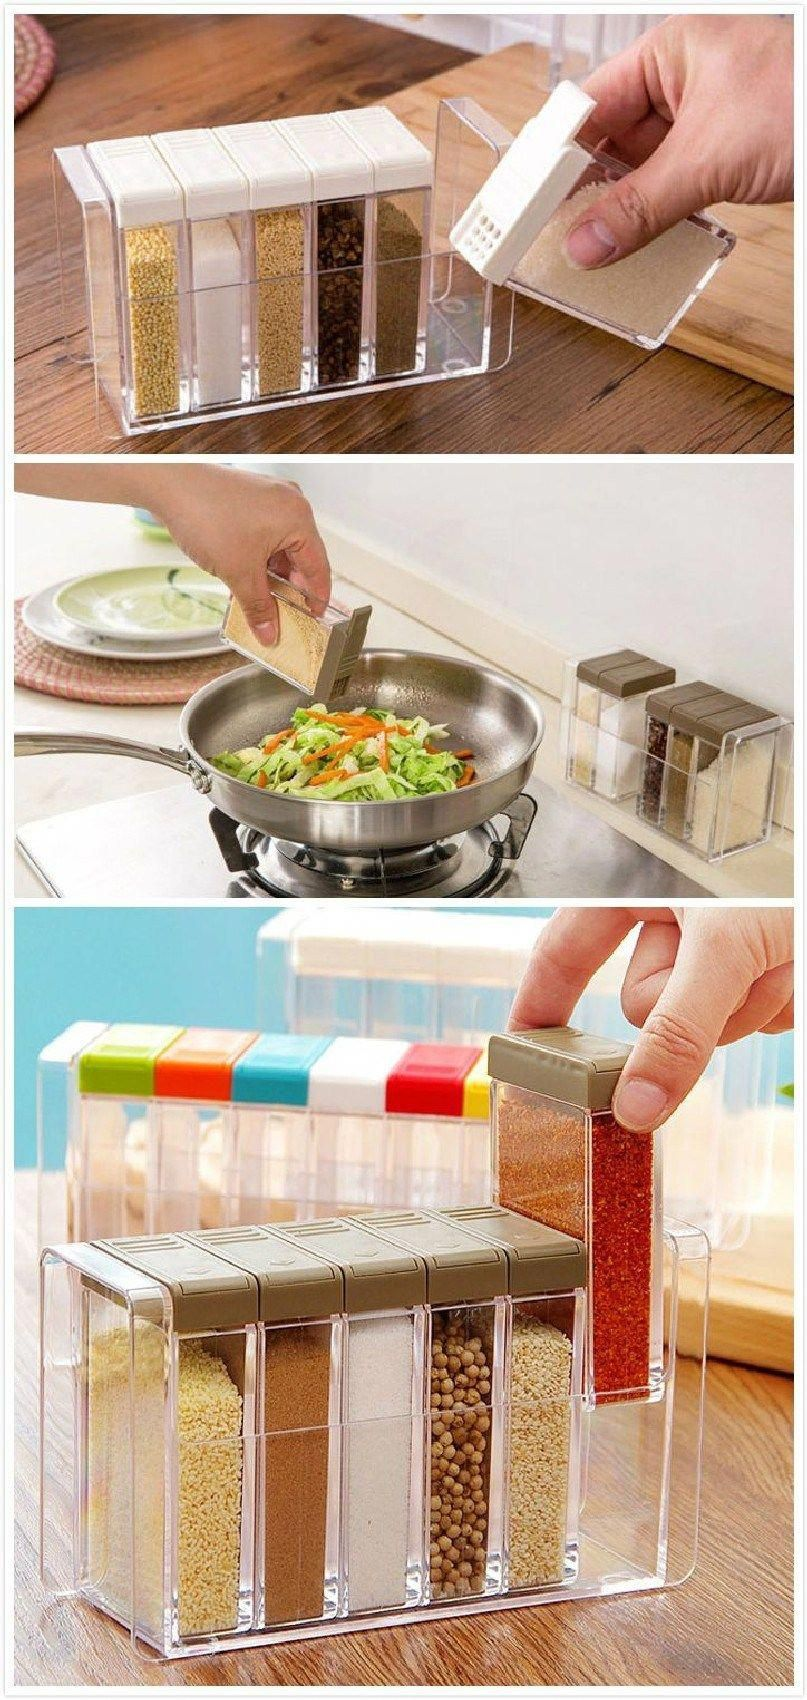 Best 15 Awesome Crazy Kitchen Gadgets for Food Lovers ...